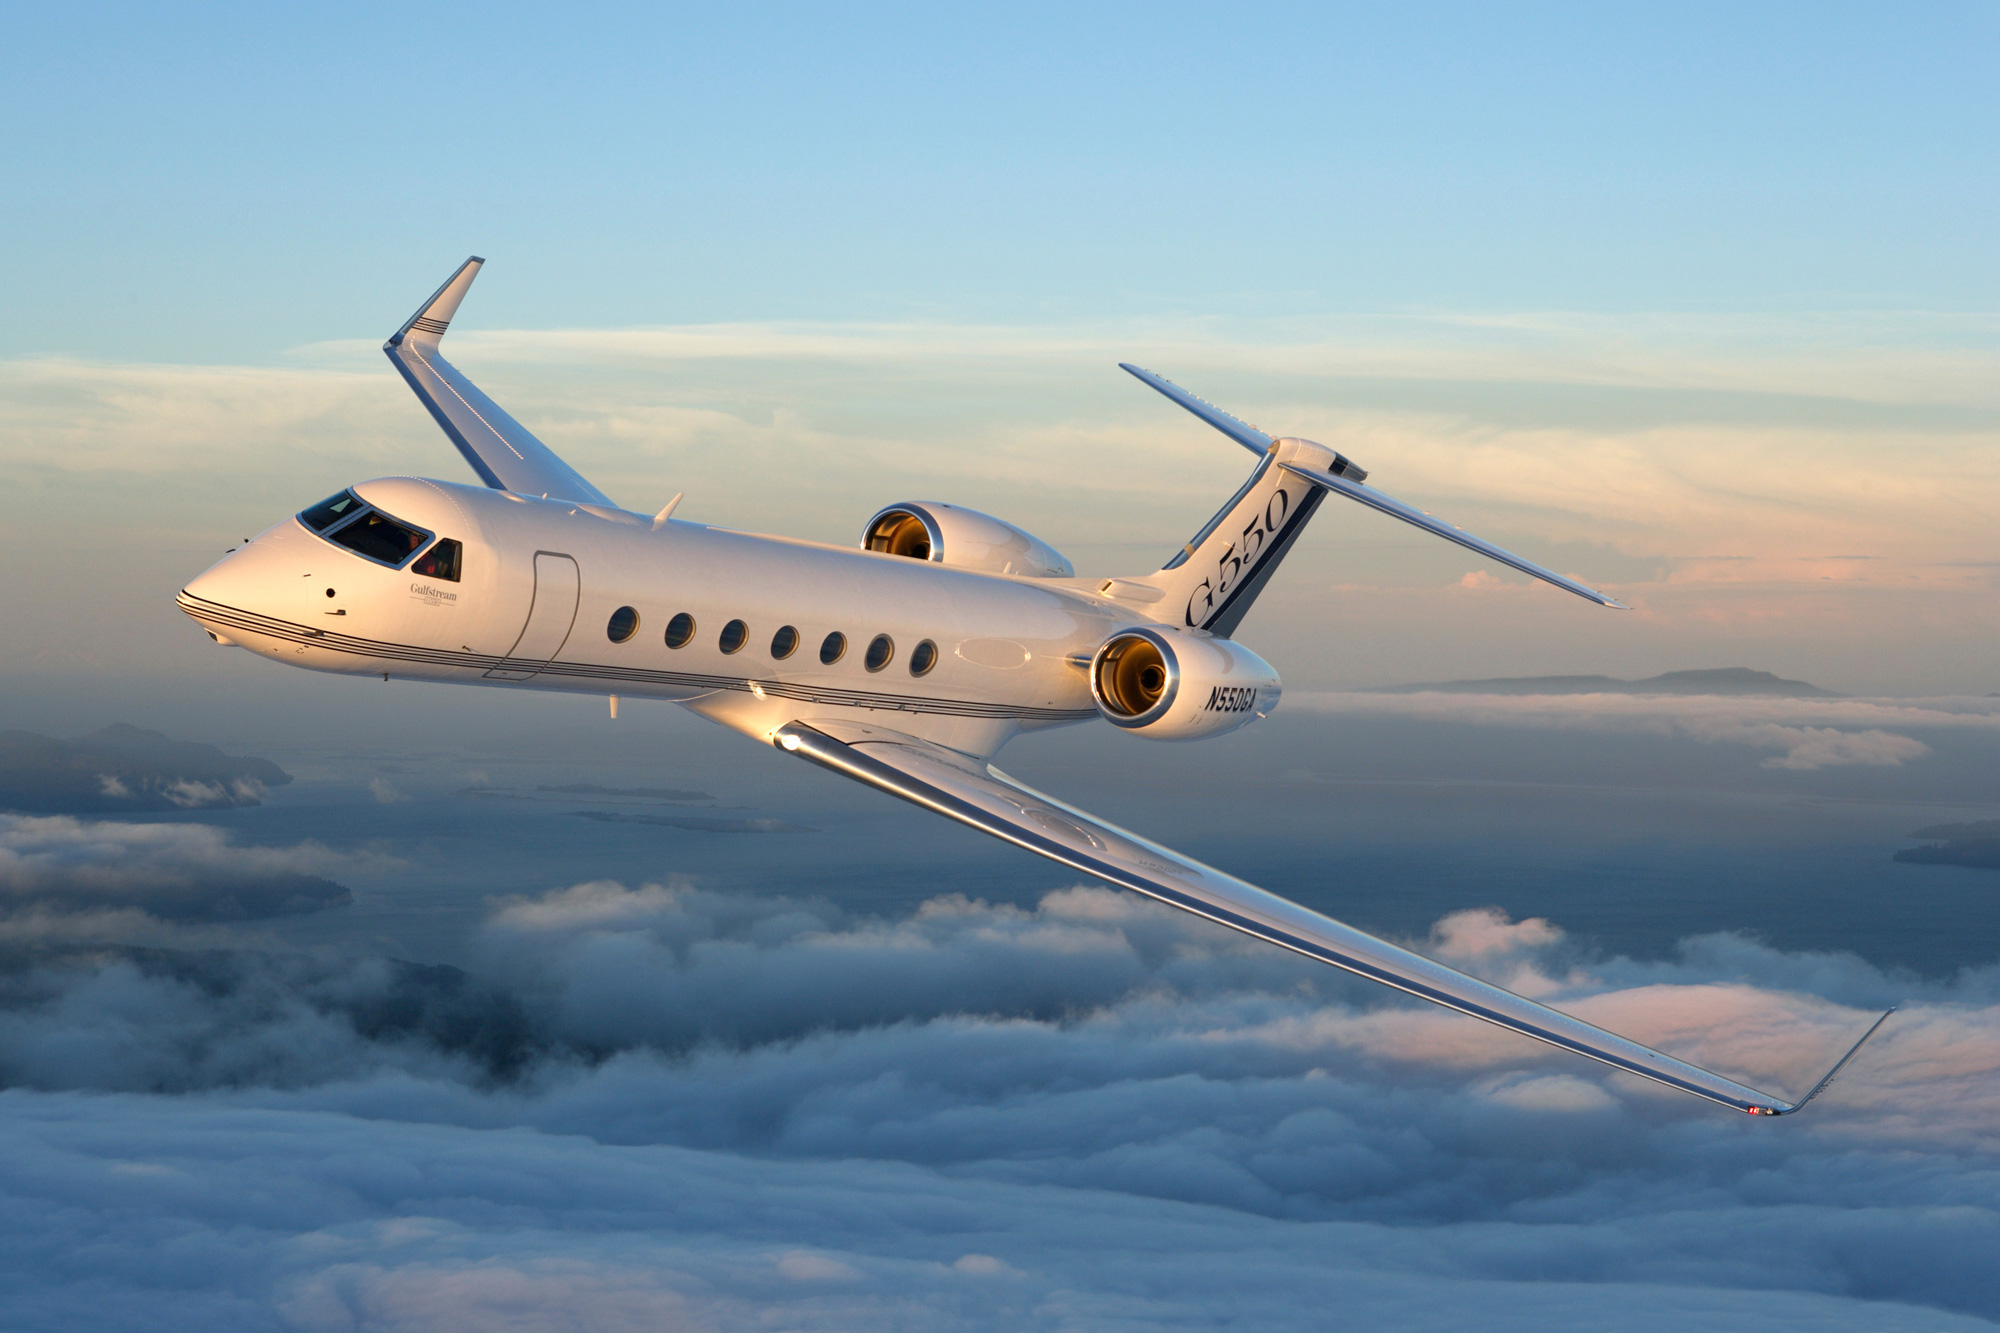 Argus north american bizav flying rises 3 9 in 1h17 for Large cabin business jets